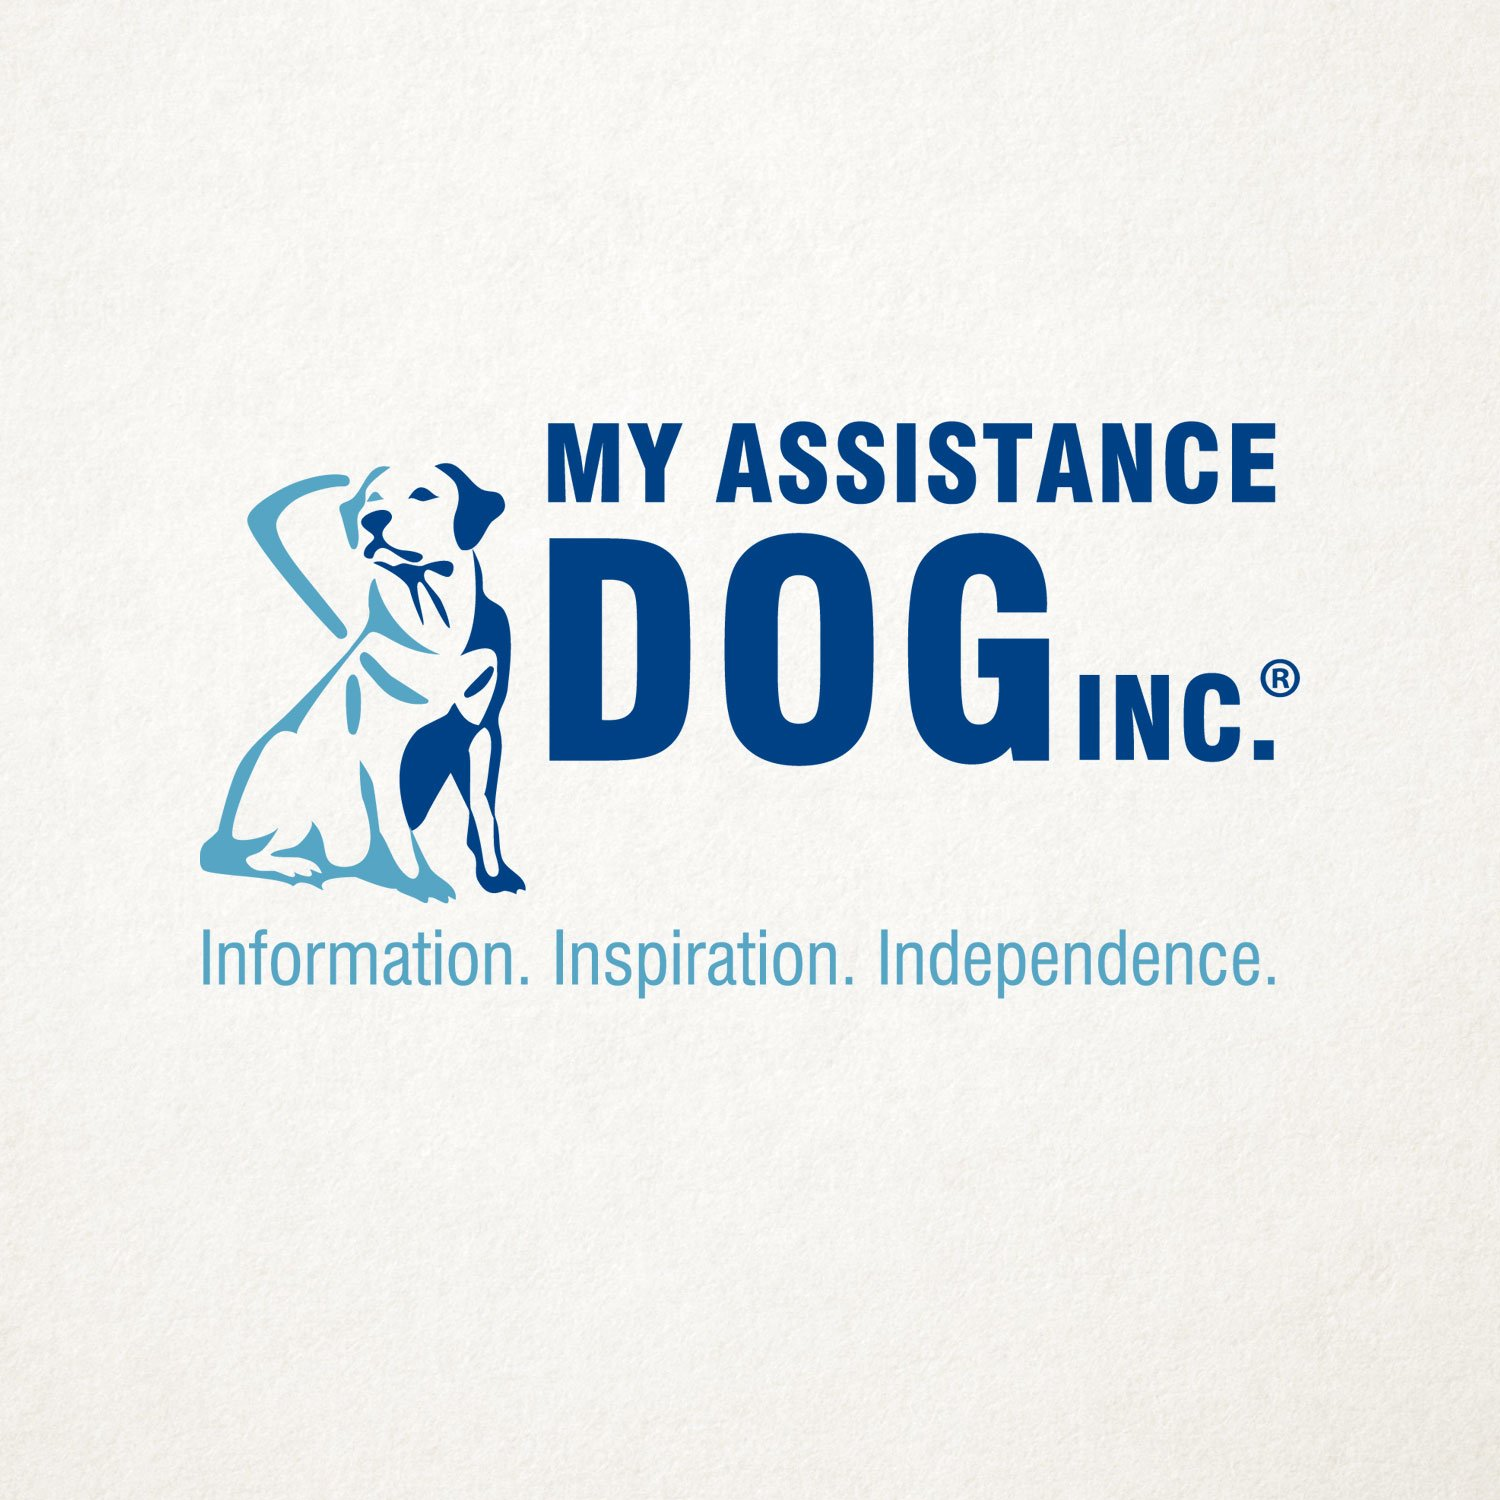 My-Assistance-Dog